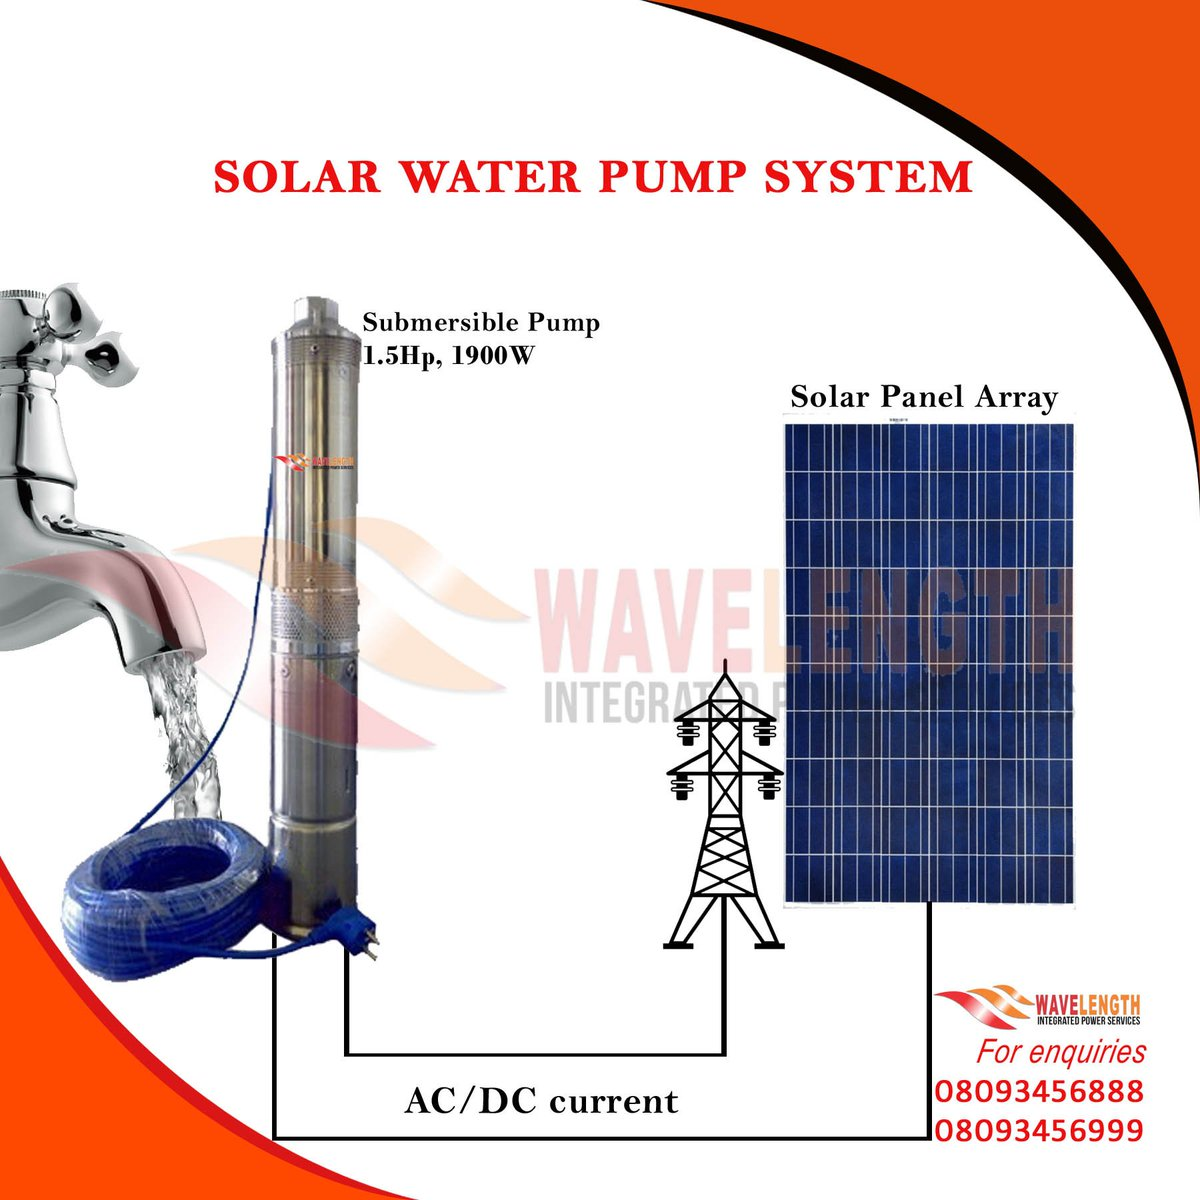 Wavelength Ips Solar Water Pump Features Very Easy Simple Diagram Usage Agriculture Irrigation Swimming Pool Daily Treatment Projects Etc Call 08093456888 08093456999 Http Wavelengthipscom